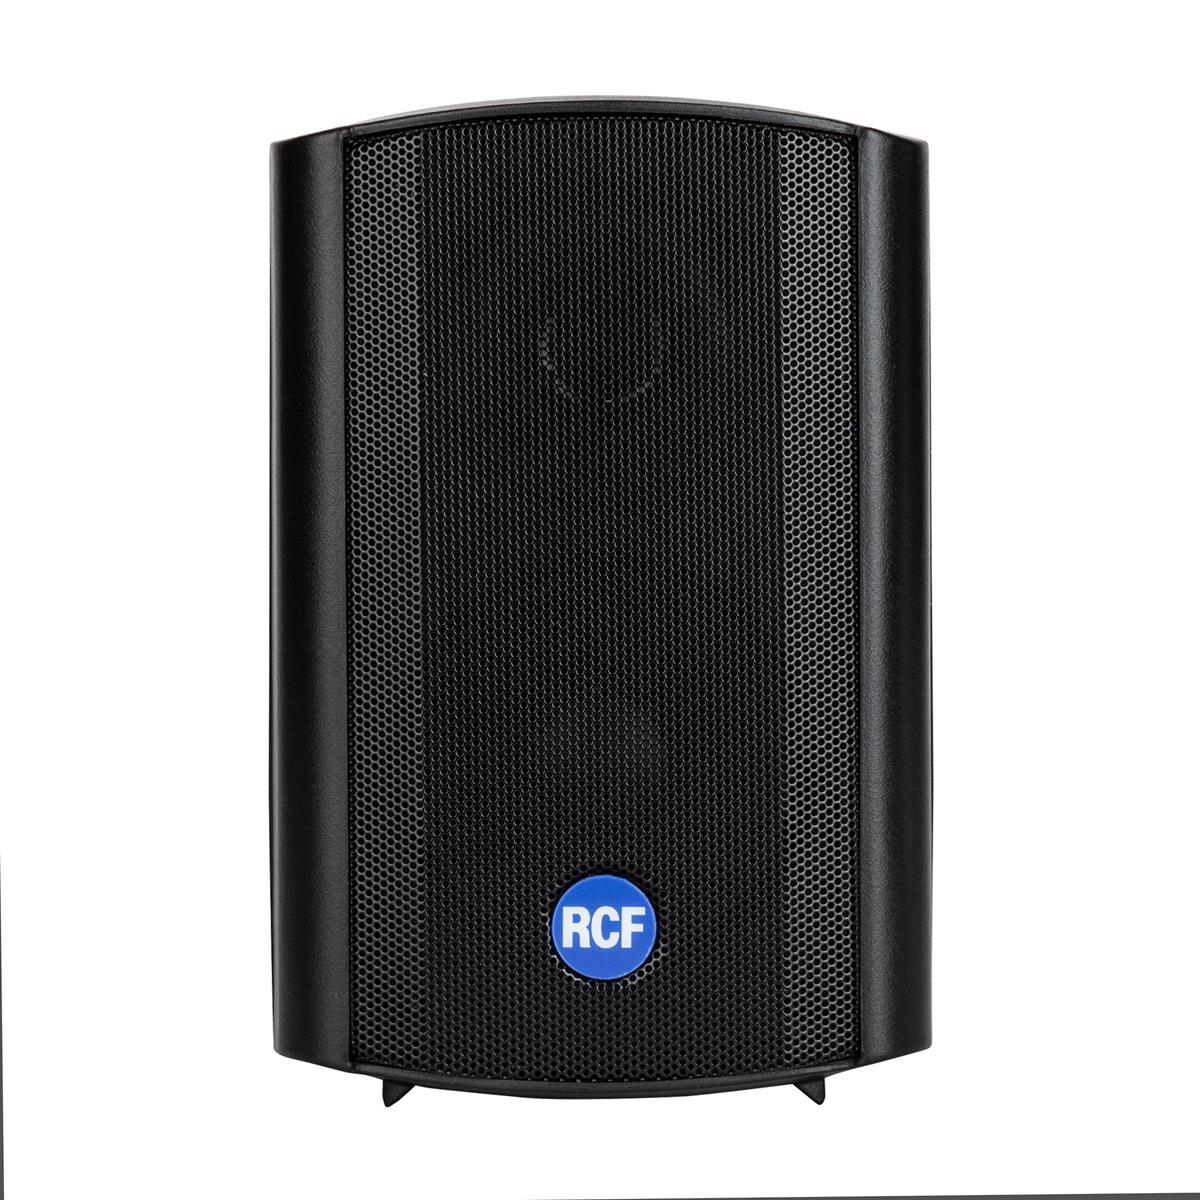 RCF Compact cabinet, 2way with 31-2in woofer, 15W - 8 Ohm, I